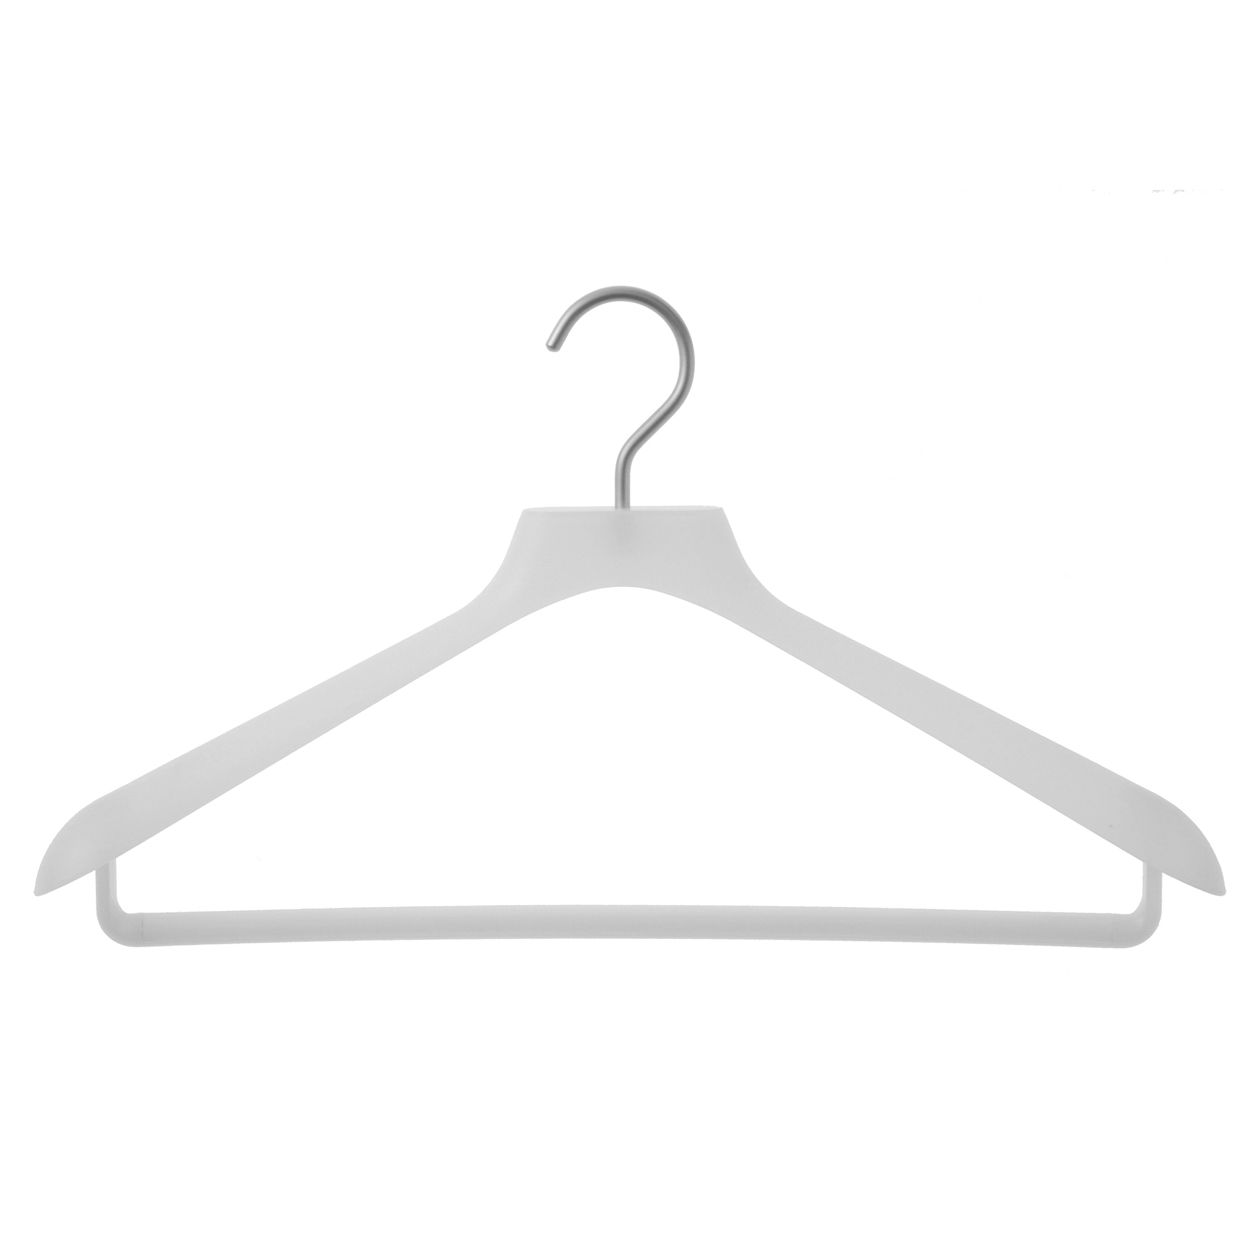 PP HANGER FOR MEN